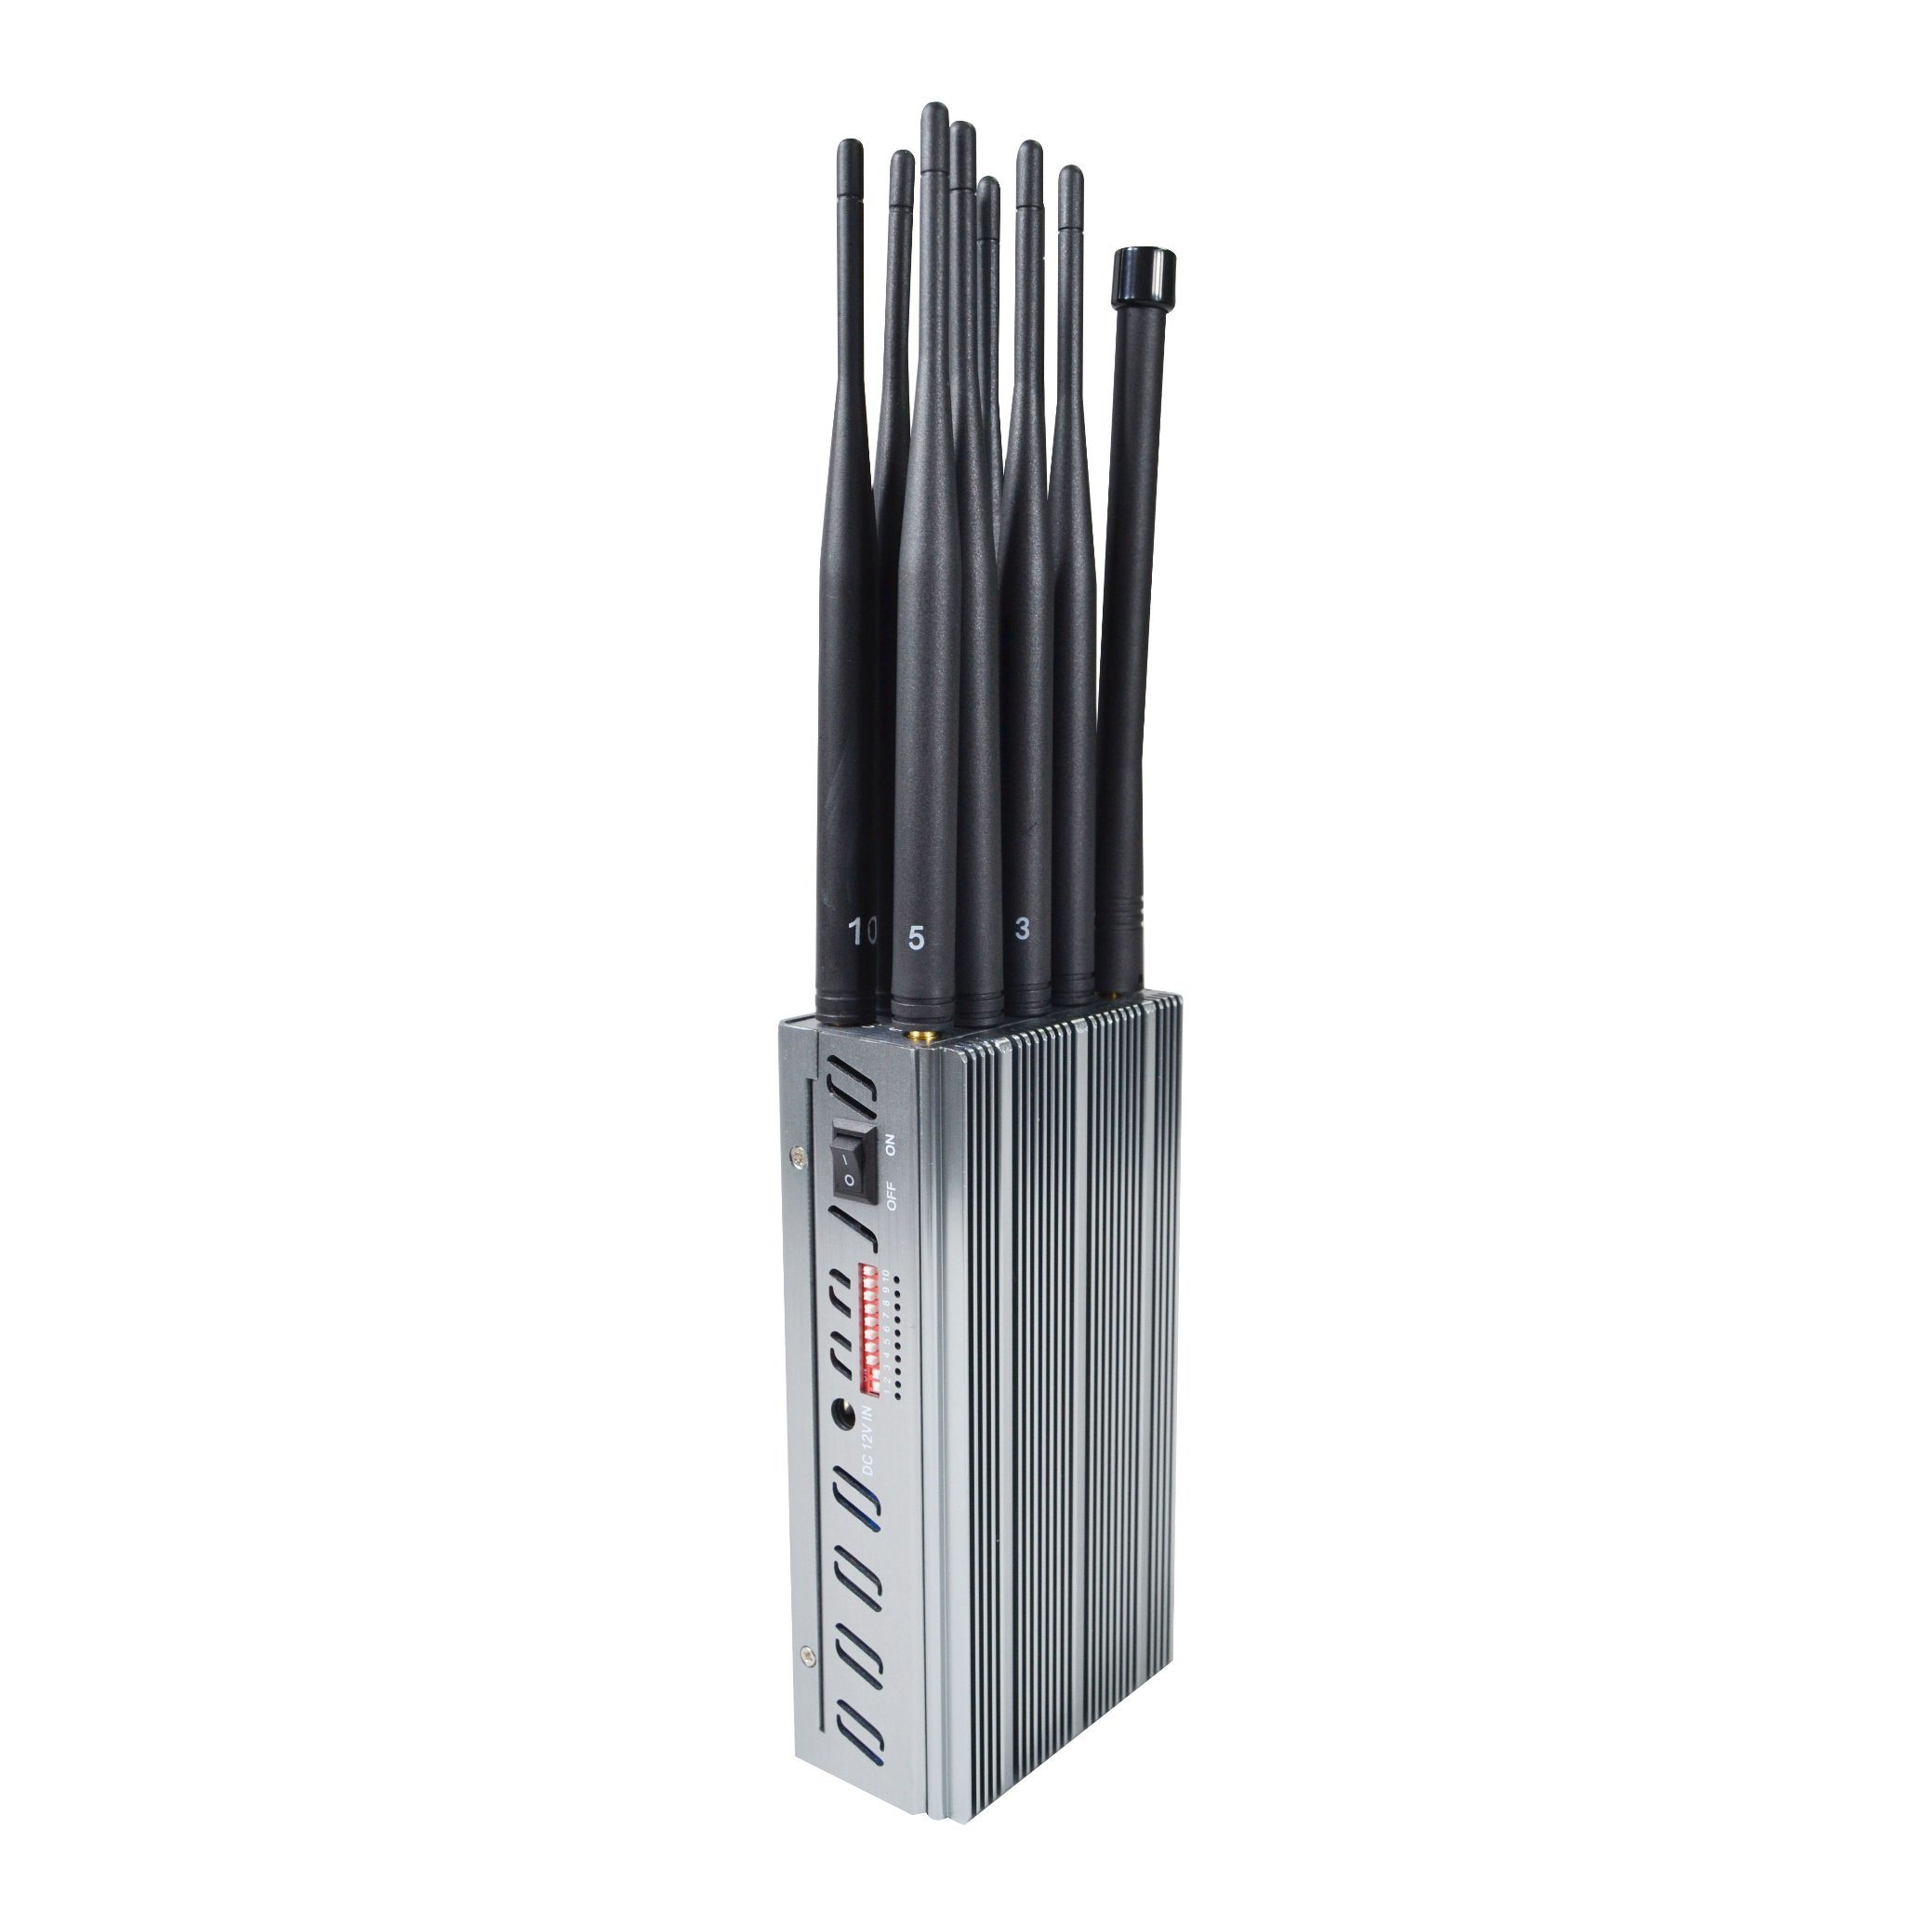 phone jammer project website - China Car Using 8000mA Portable Jammers for Long Working Time, Support Car Charging Battery - China Mobile Phone Jammer, Full Band Signal Blockers